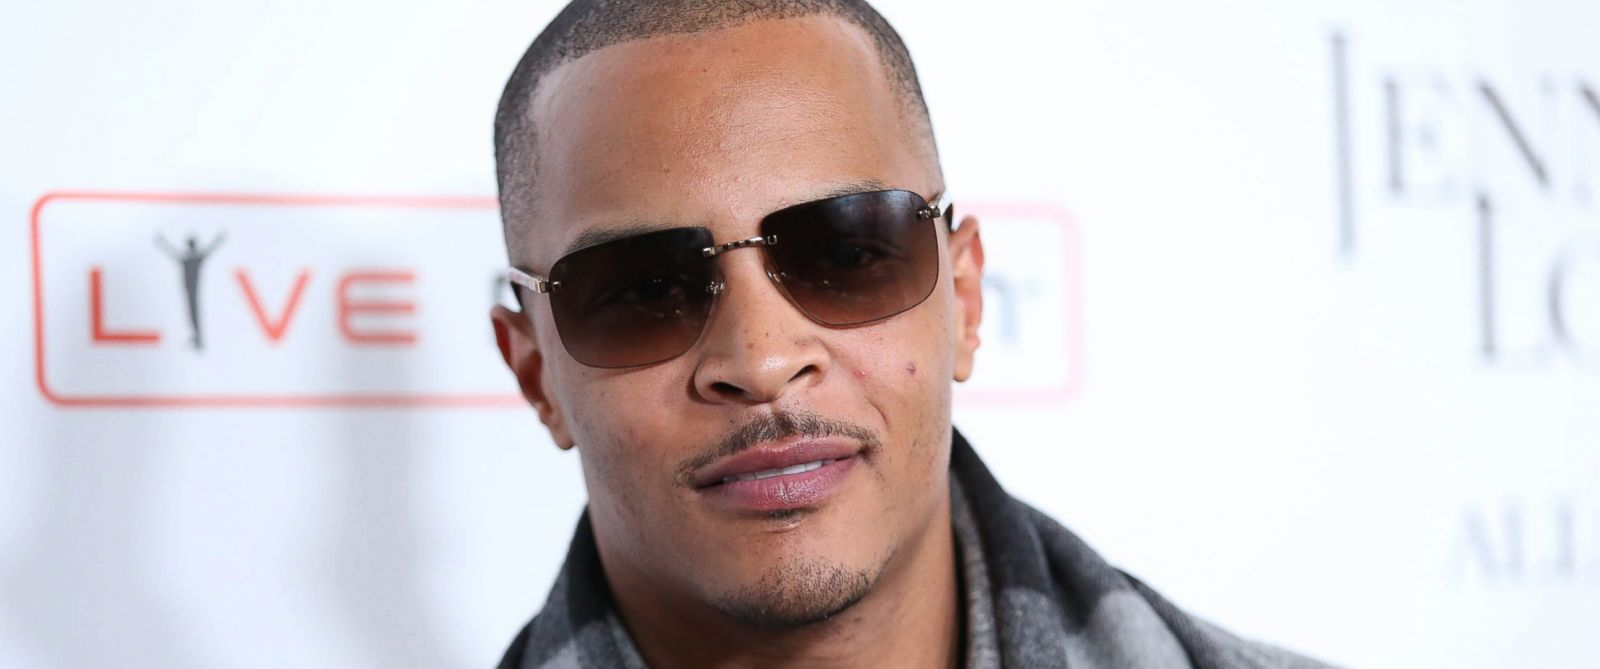 1 Dead, 3 Injured After Shooting at NYC Venue Where T.I. Scheduled to Perform